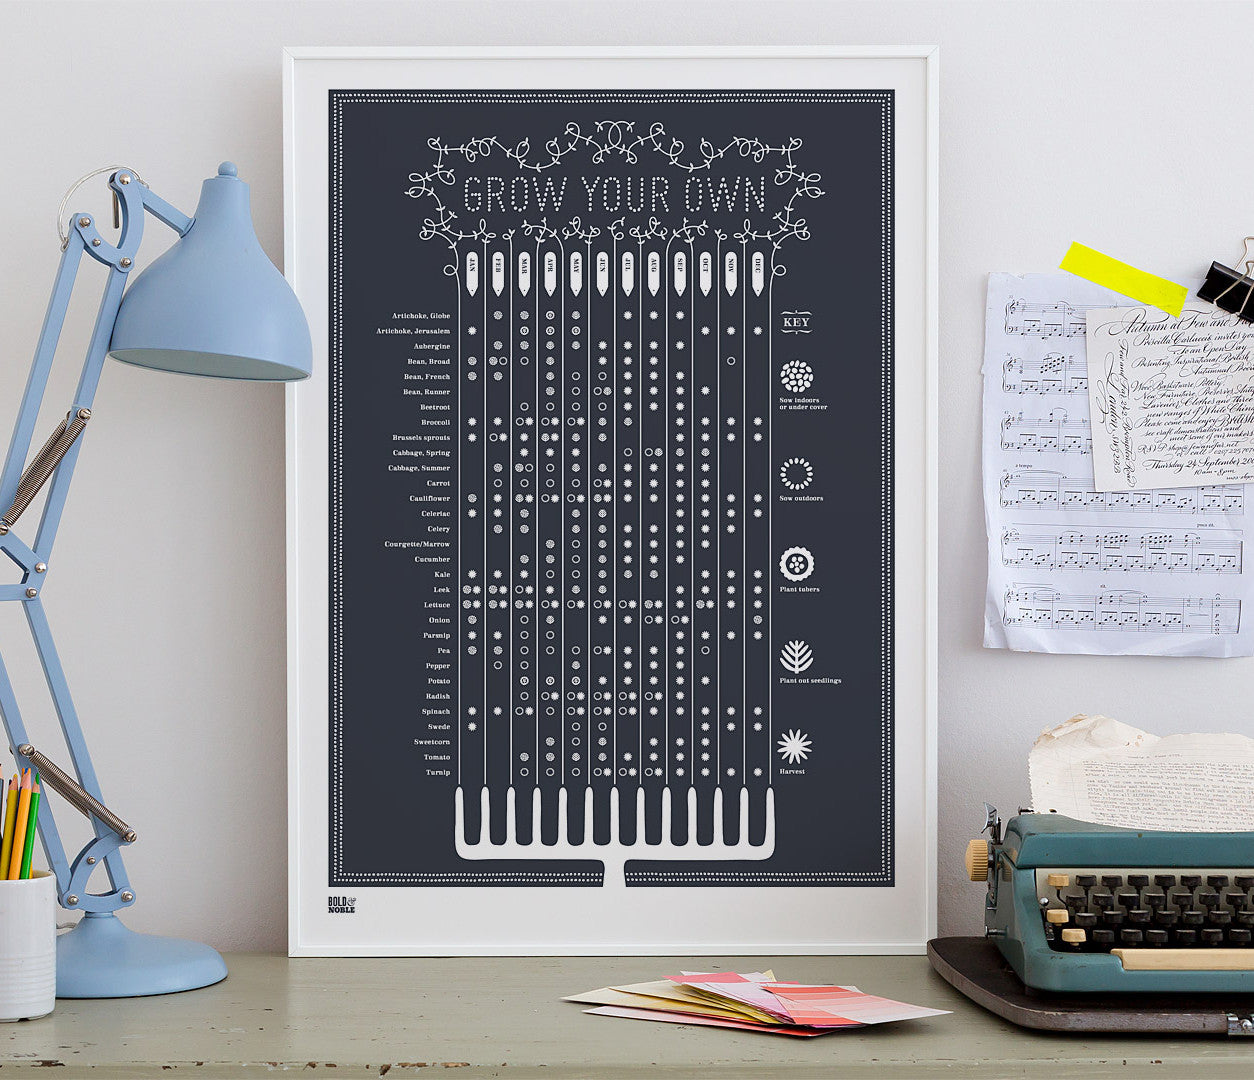 Wall Art ideas: Economical Screen Prints, Grow Your Own Planting Guide in Sheer Slate